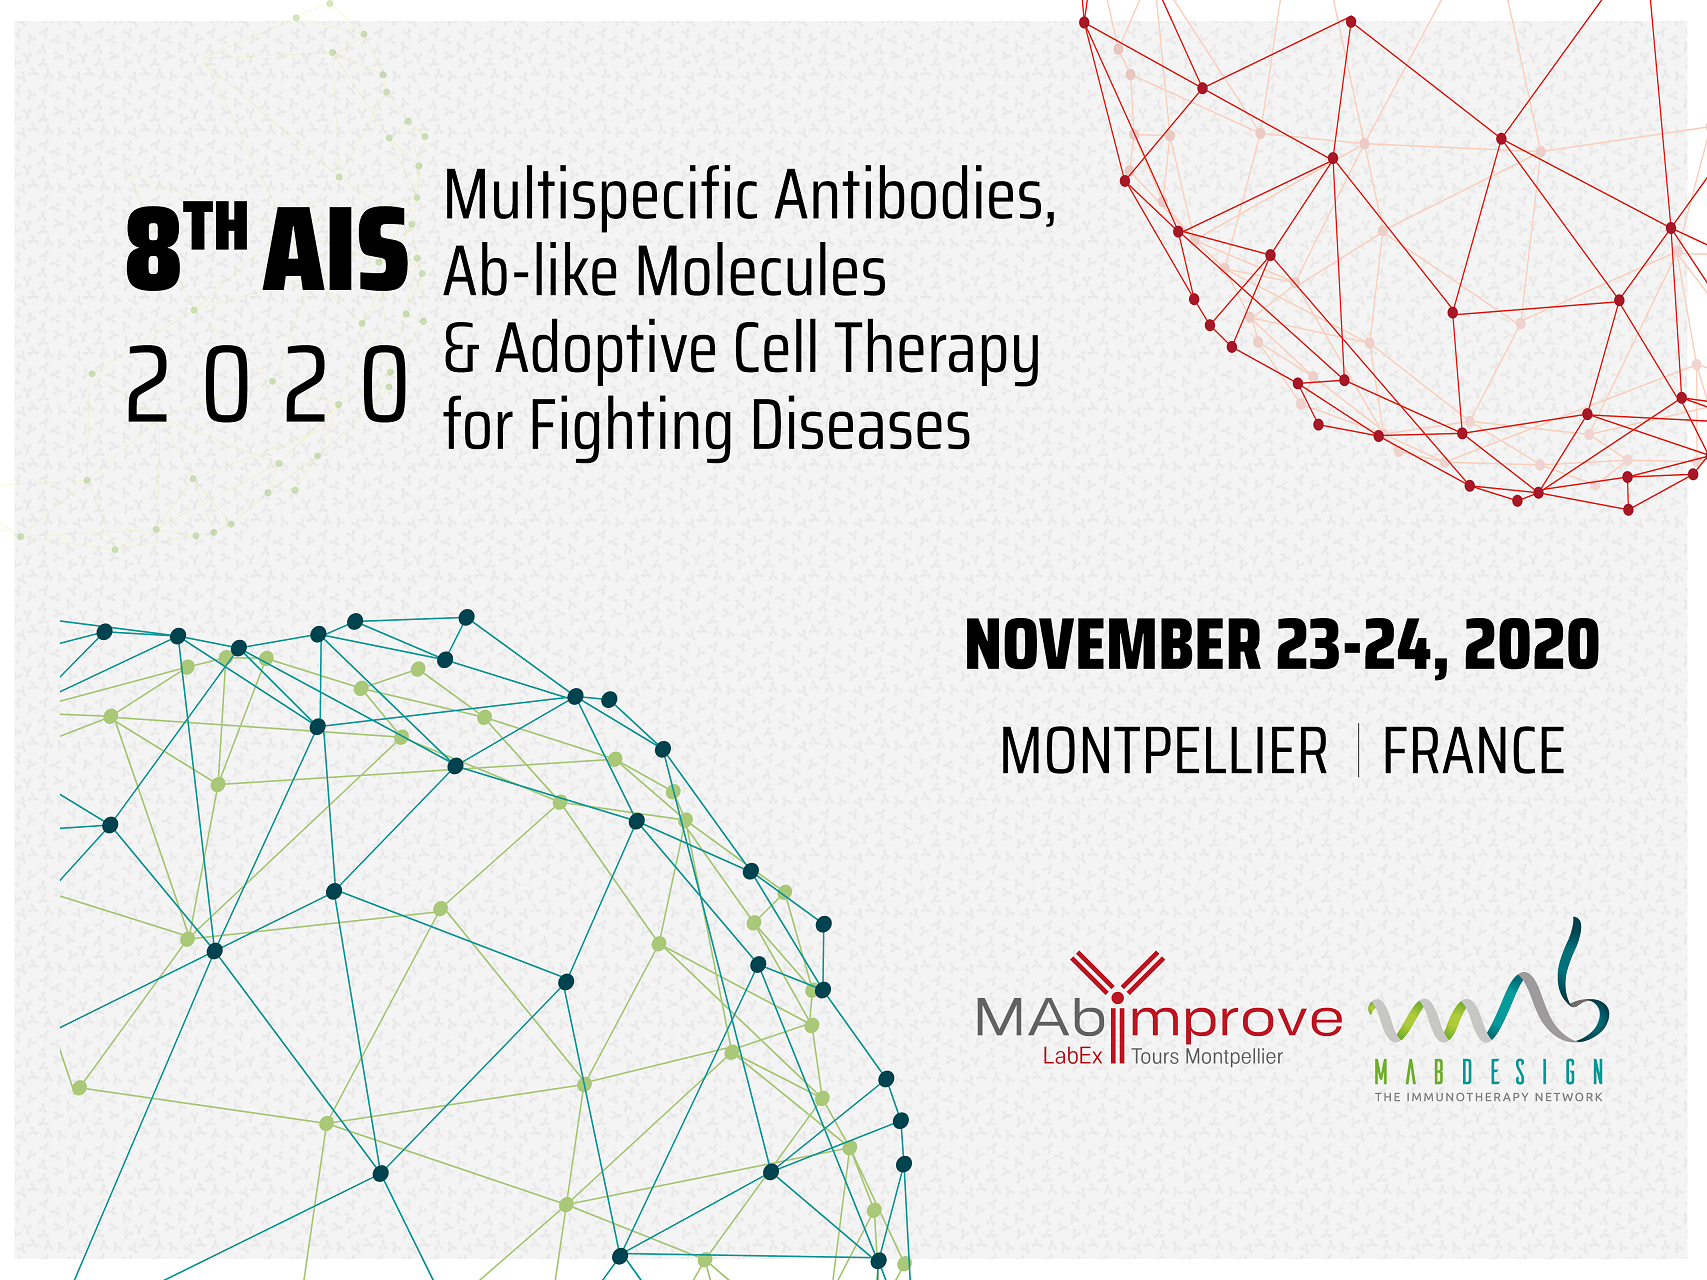 multispecific antibodies ab-like molecules and adoptive cell therapy for fighting diseases